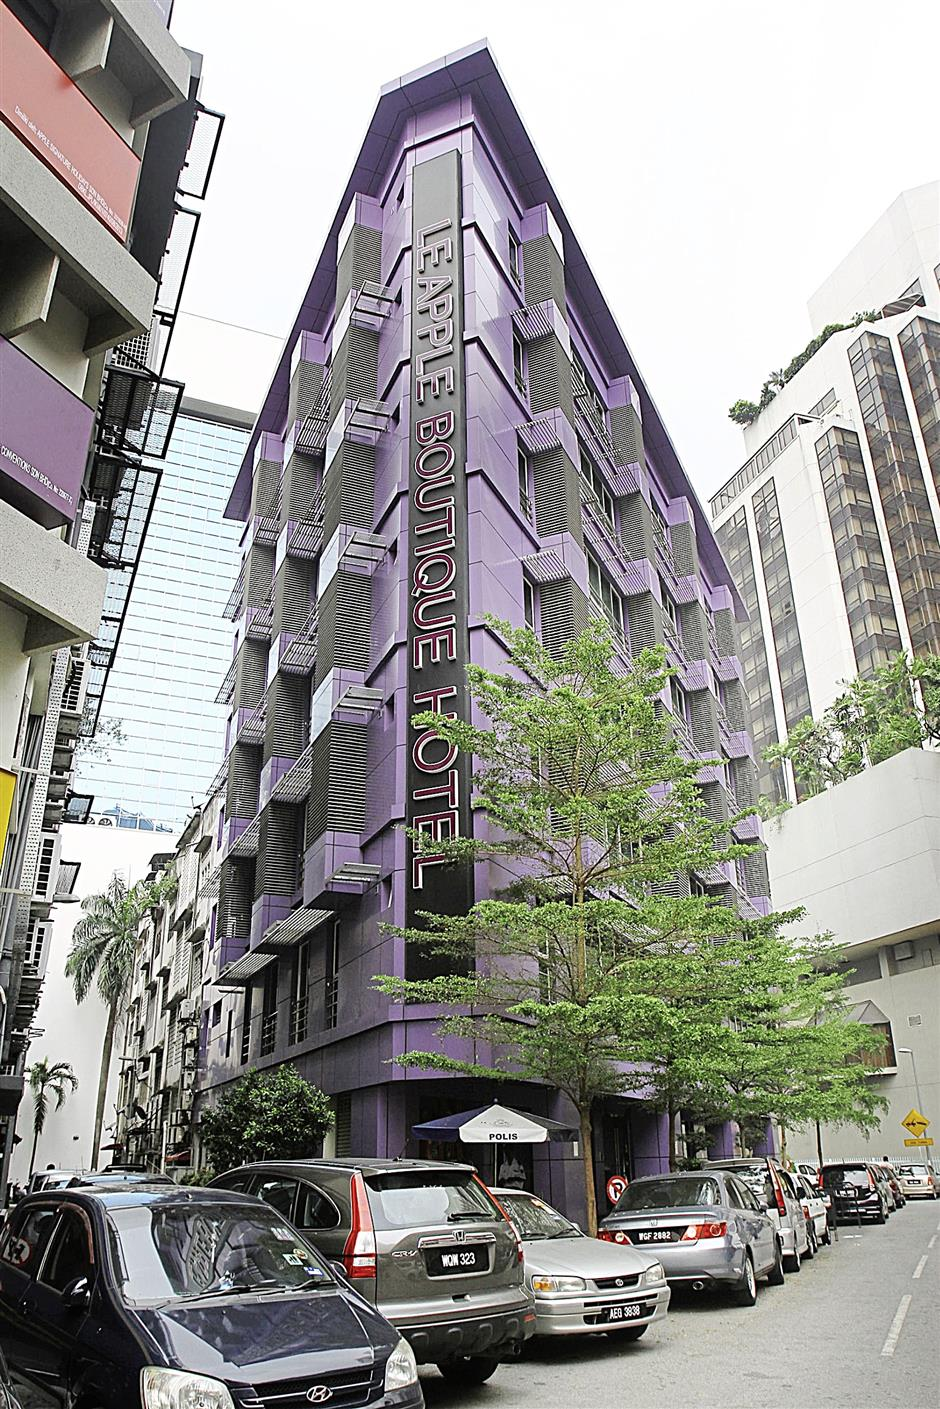 Having diversified into hotels, the company now owns several, including Le Apple, a boutique hotel on Jalan Sultan Ismail in Kuala Lumpur.